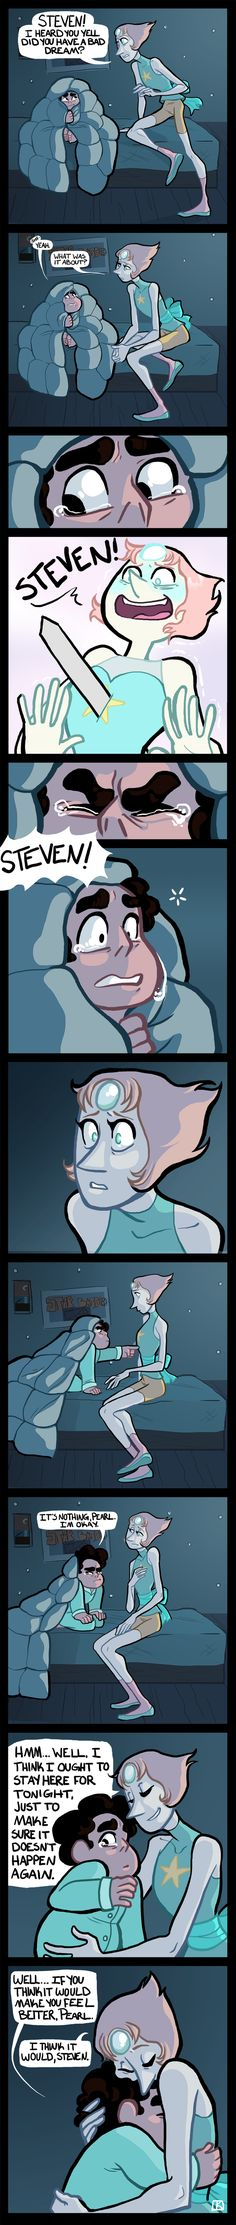 """This is why I watch this show. You're all like """"aww it's just a silly kids show about a magic boy."""" And then WHHHHHHUUUUUUM! Right in the feels. SU: Bad Dream by ArtKat.deviantart.com on @DeviantArt"""